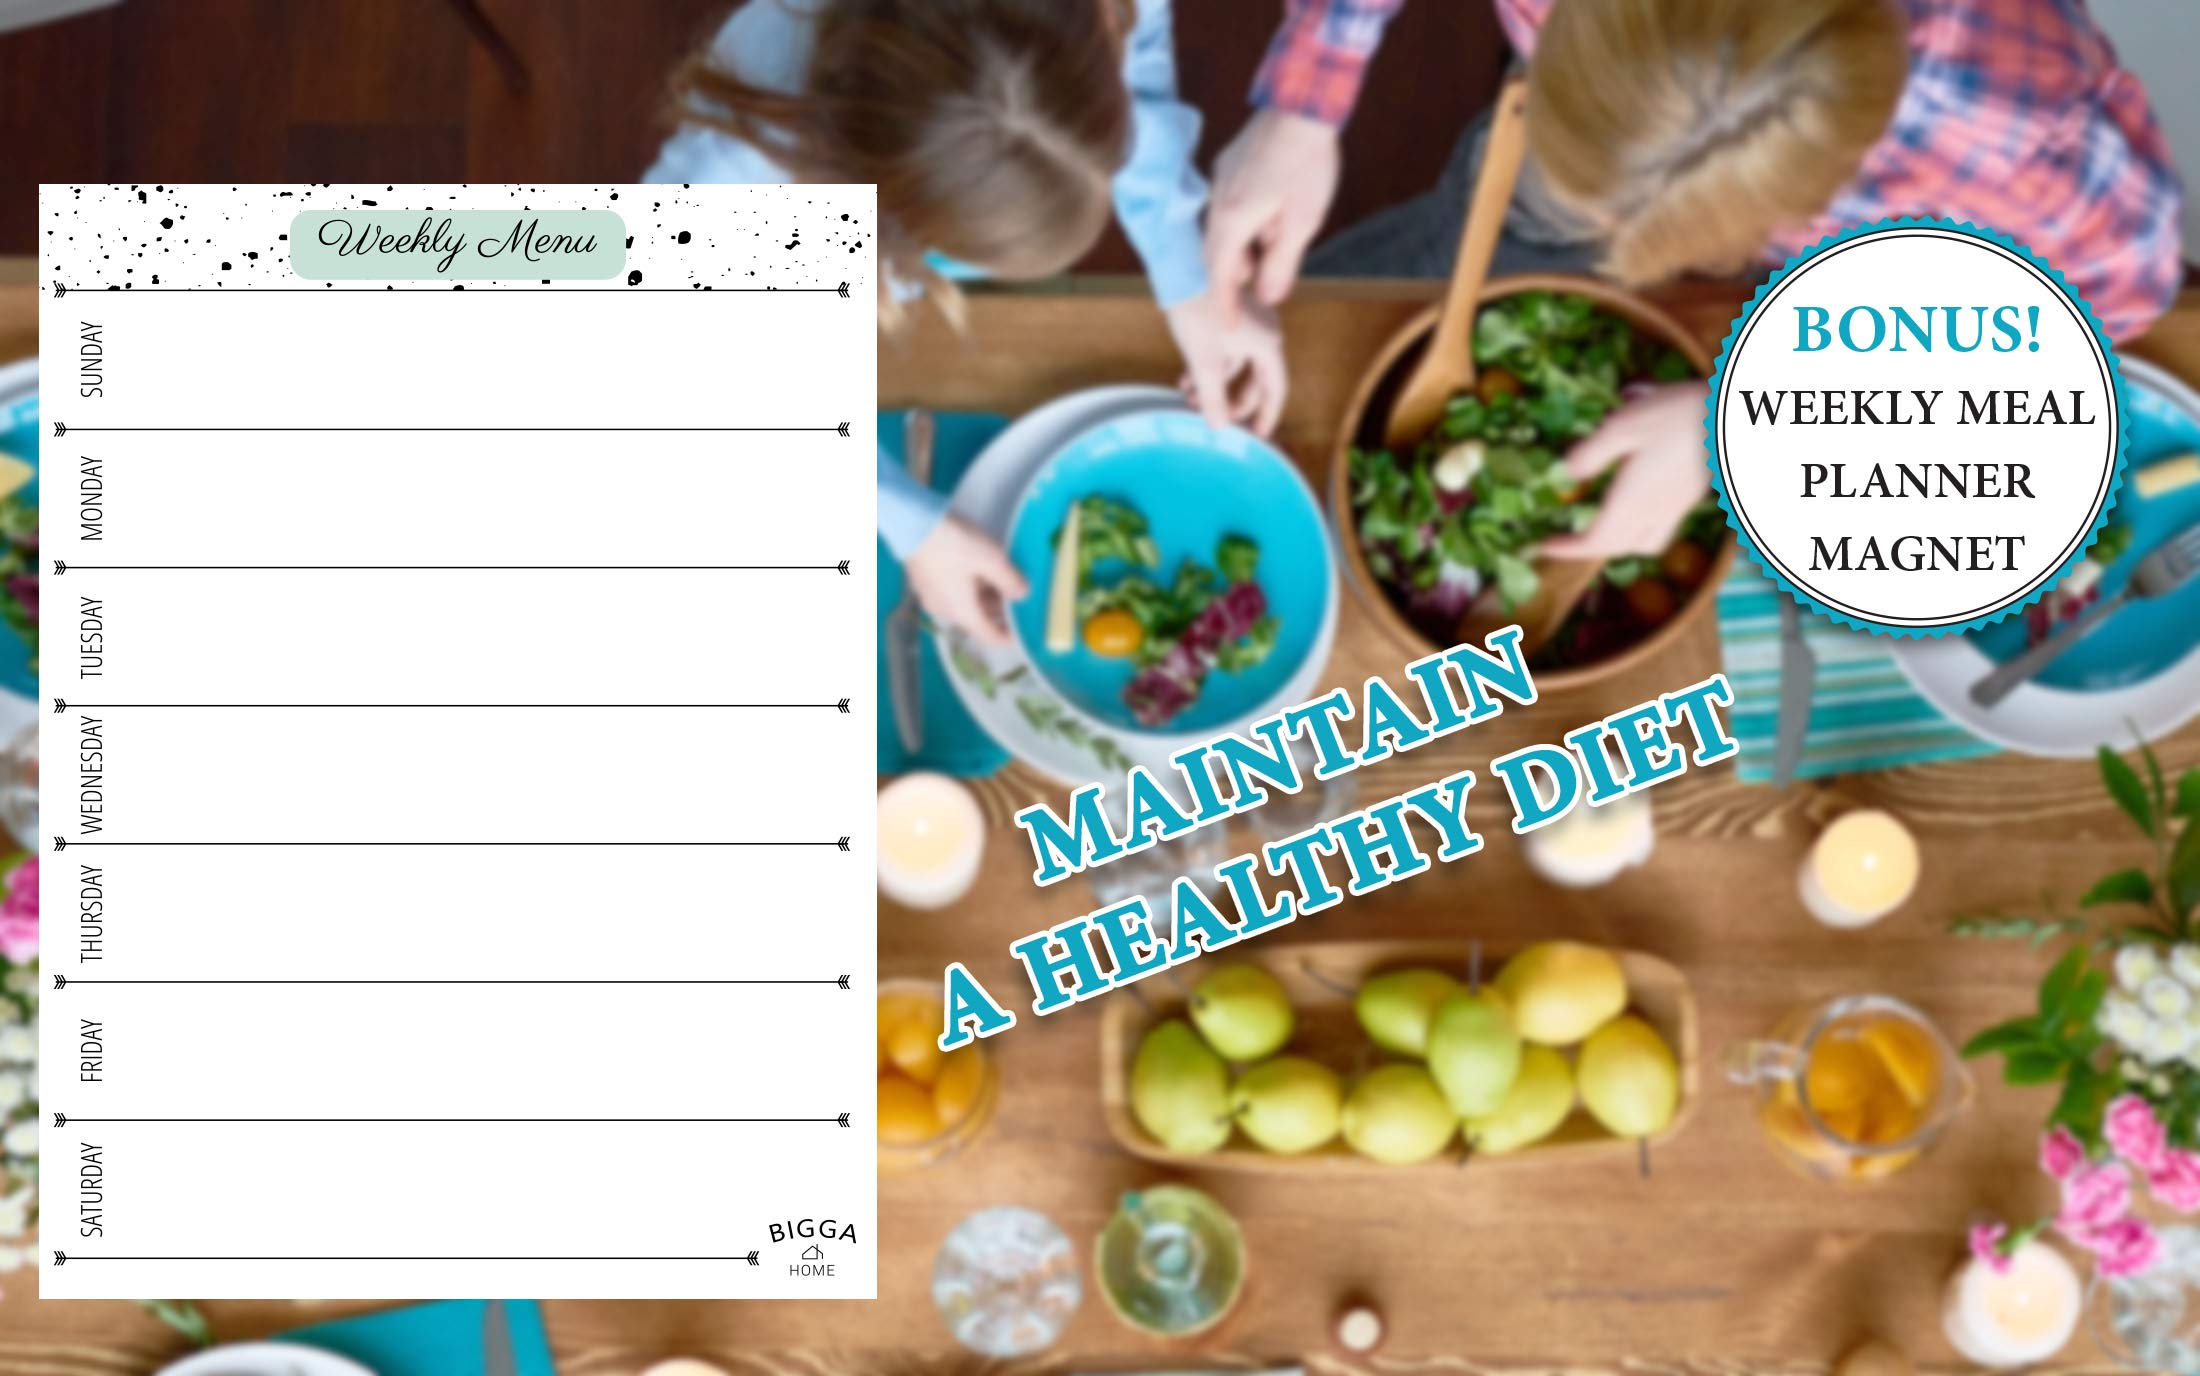 Dry Erase Monthly Magnetic Calendar Planner Set, White Board W/Extra Meal Planner, for Kitchen Refrigerator, Flexible, a Highly Designed Stiff Box for Home or Office. White, 16''x12''. by BIGGAHOME by Bigga Home (Image #5)